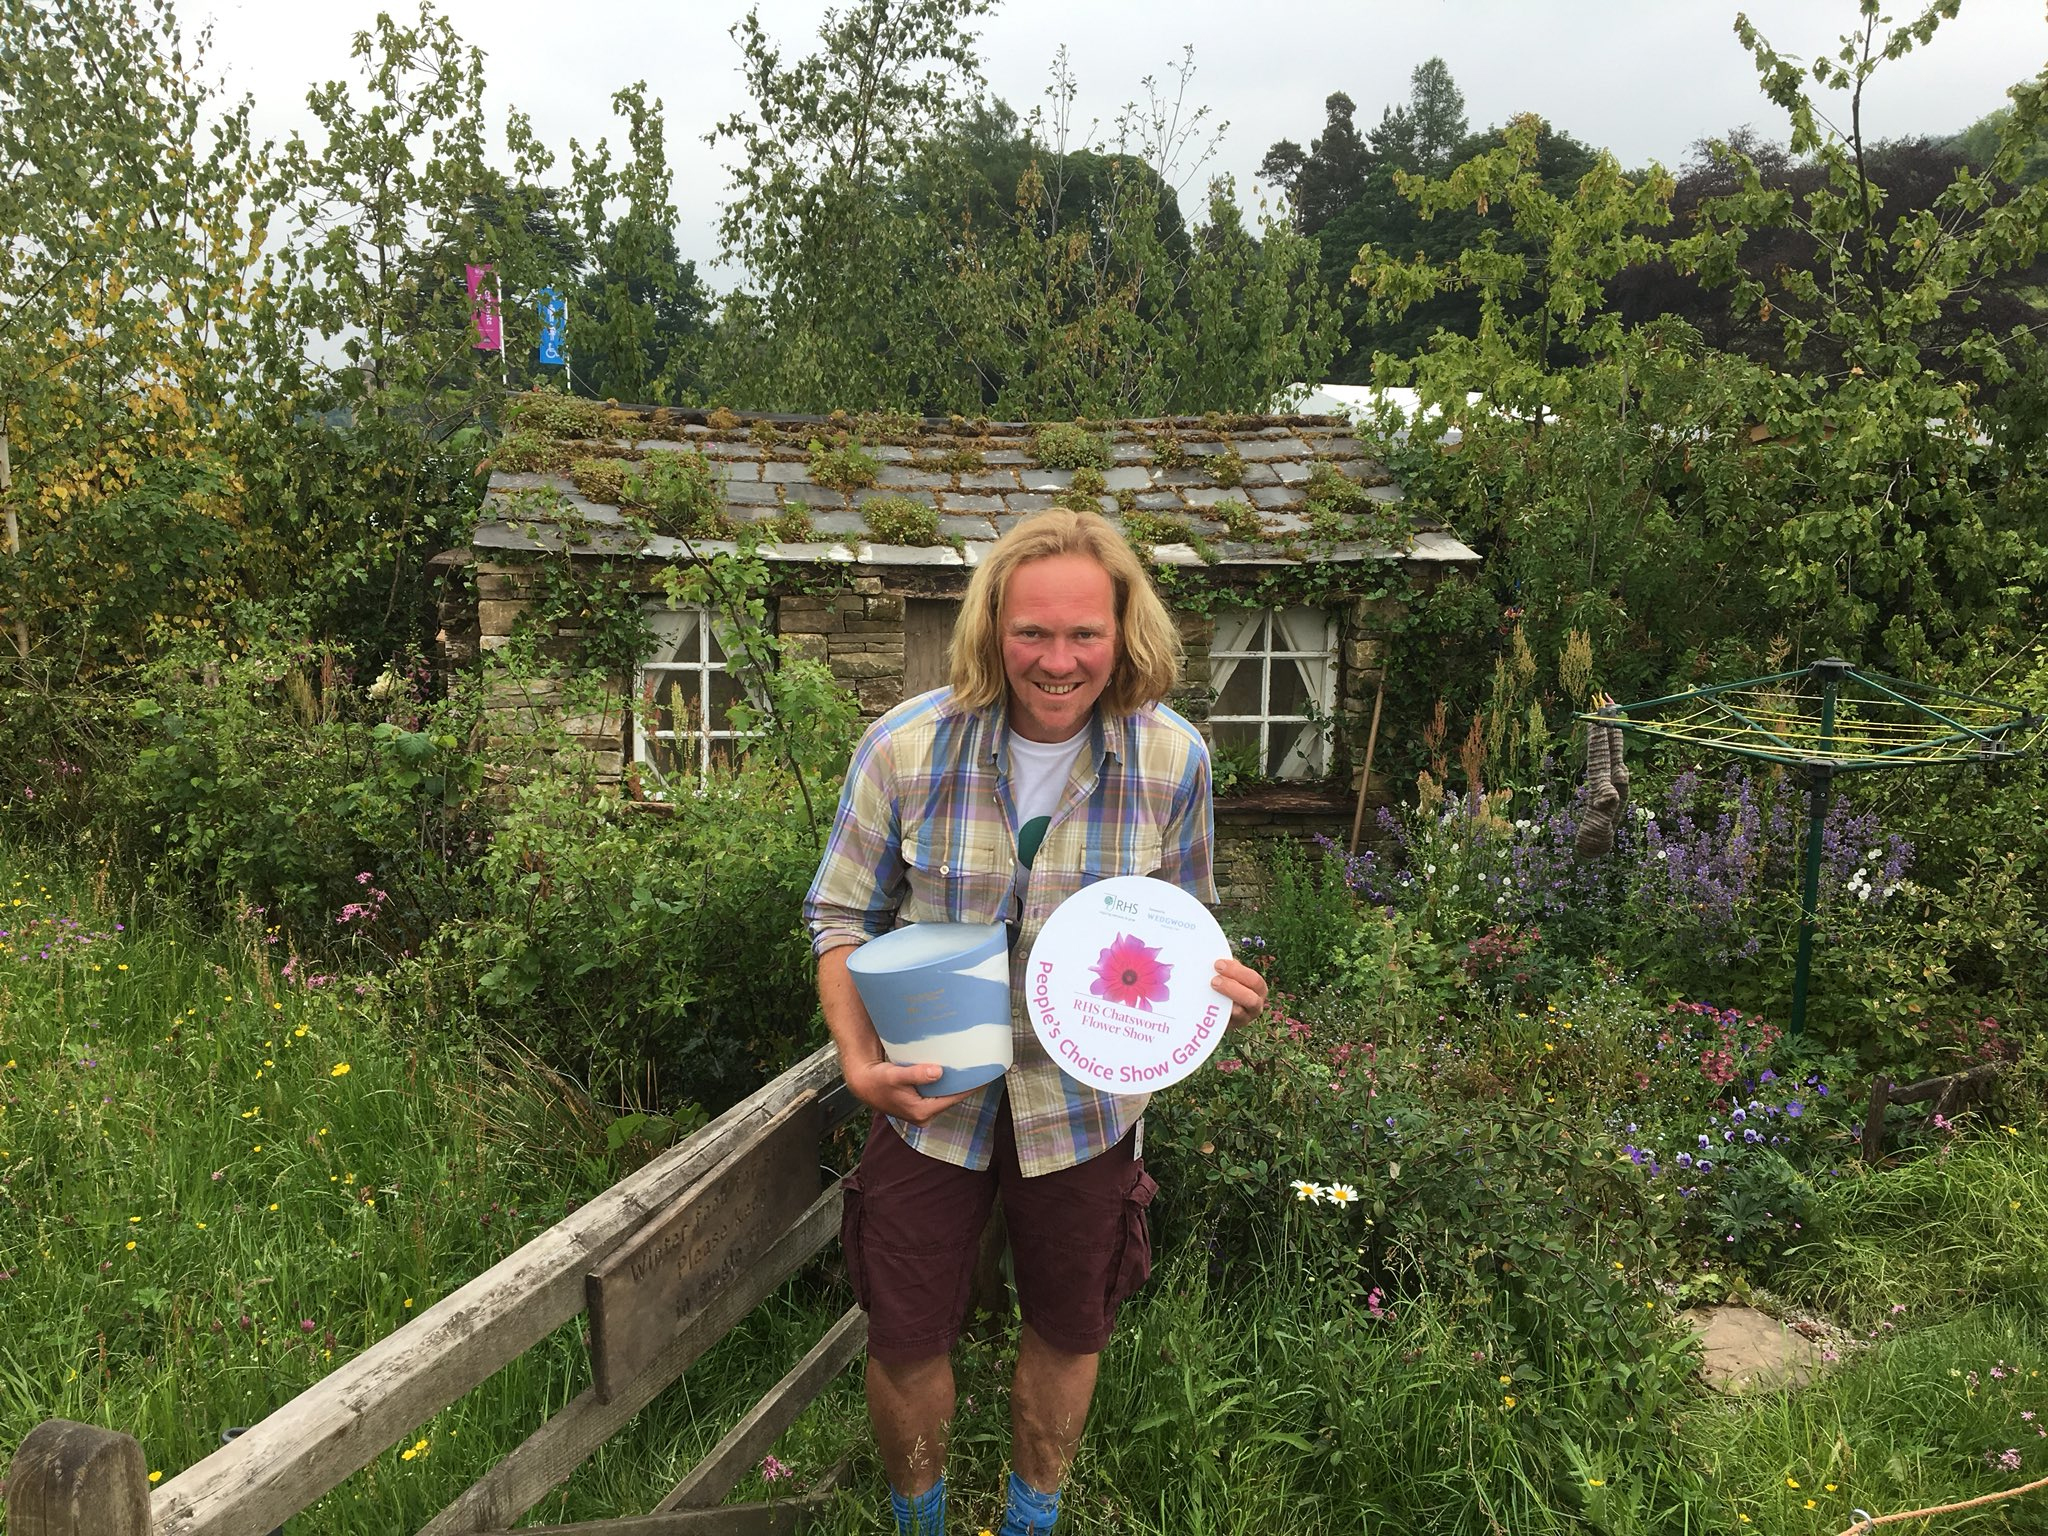 Chris Myers receives People's Choice Award at RHS Chatsworth Flower Show